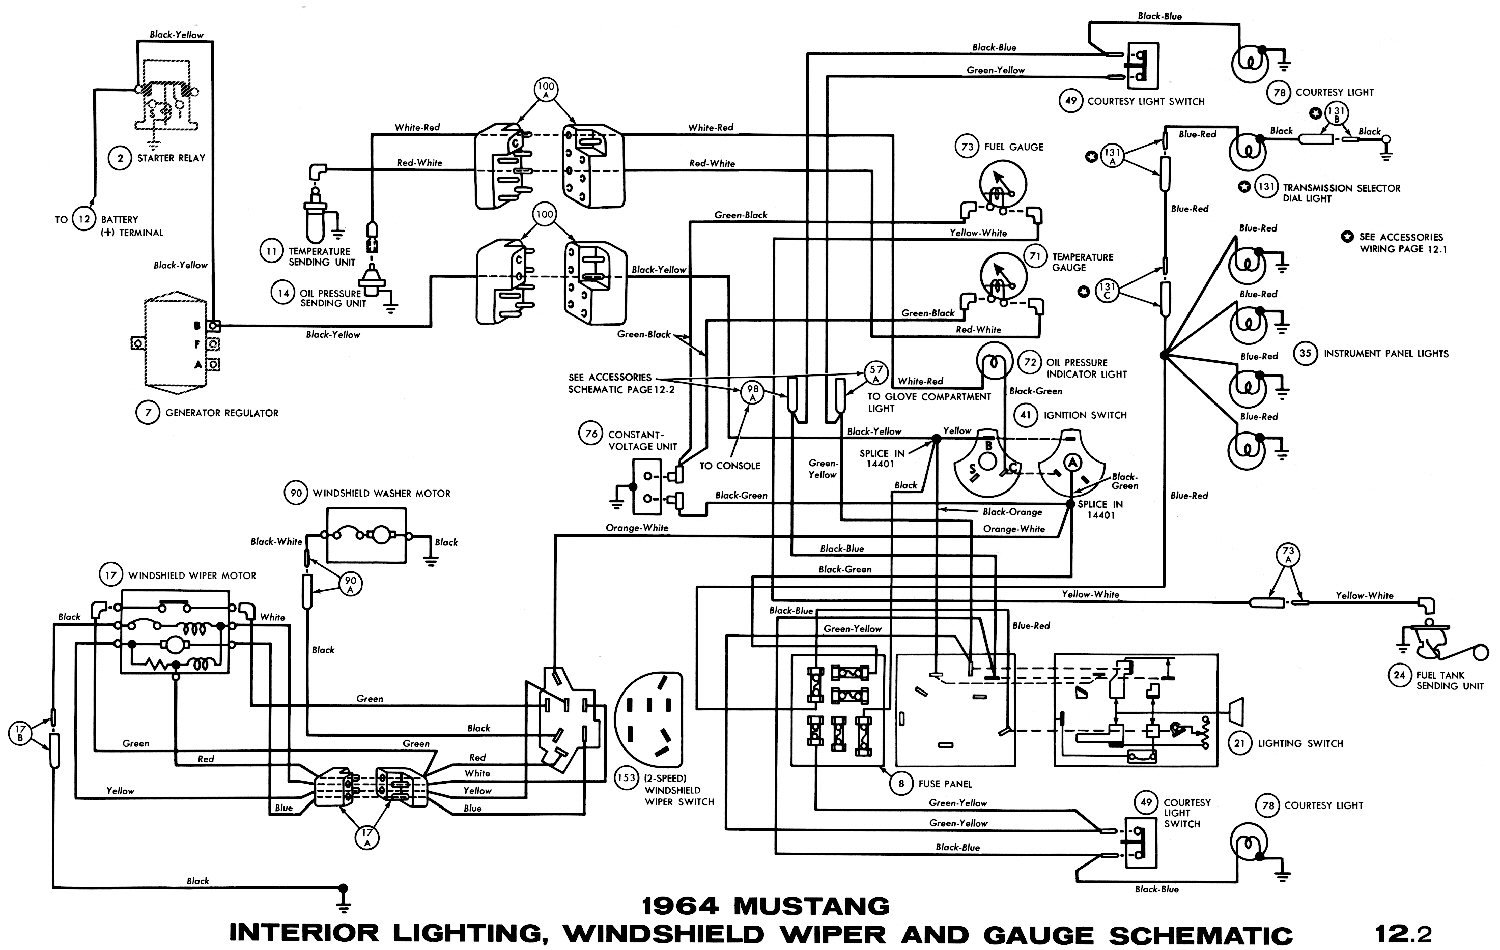 67 Mustang Interior Wiring Diagram Reveolution Of Ford Alt El Ritningar Rh Ht67 Com 1966 Alternator